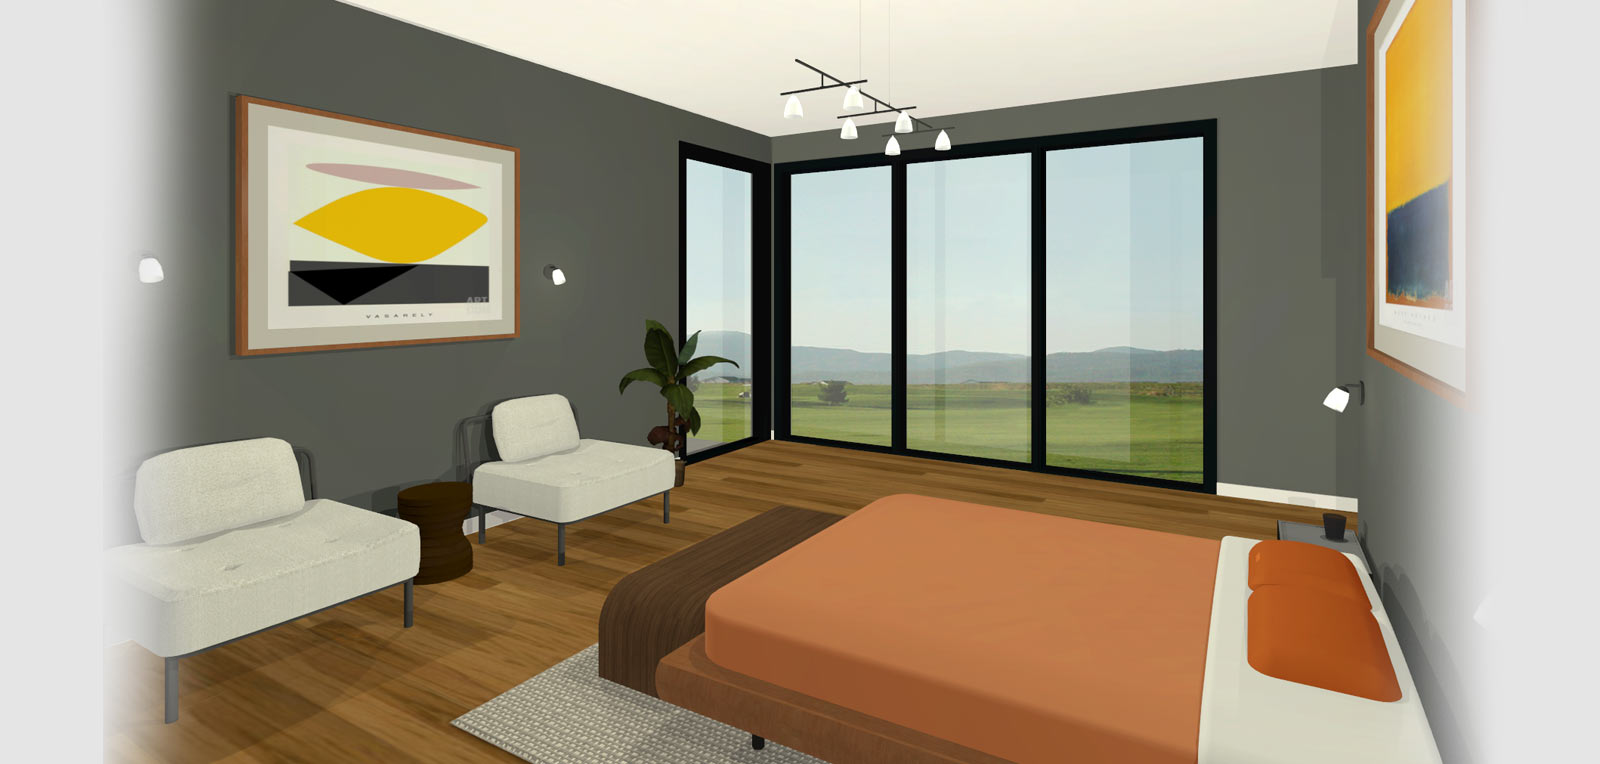 Home designer interior design software Internal house design